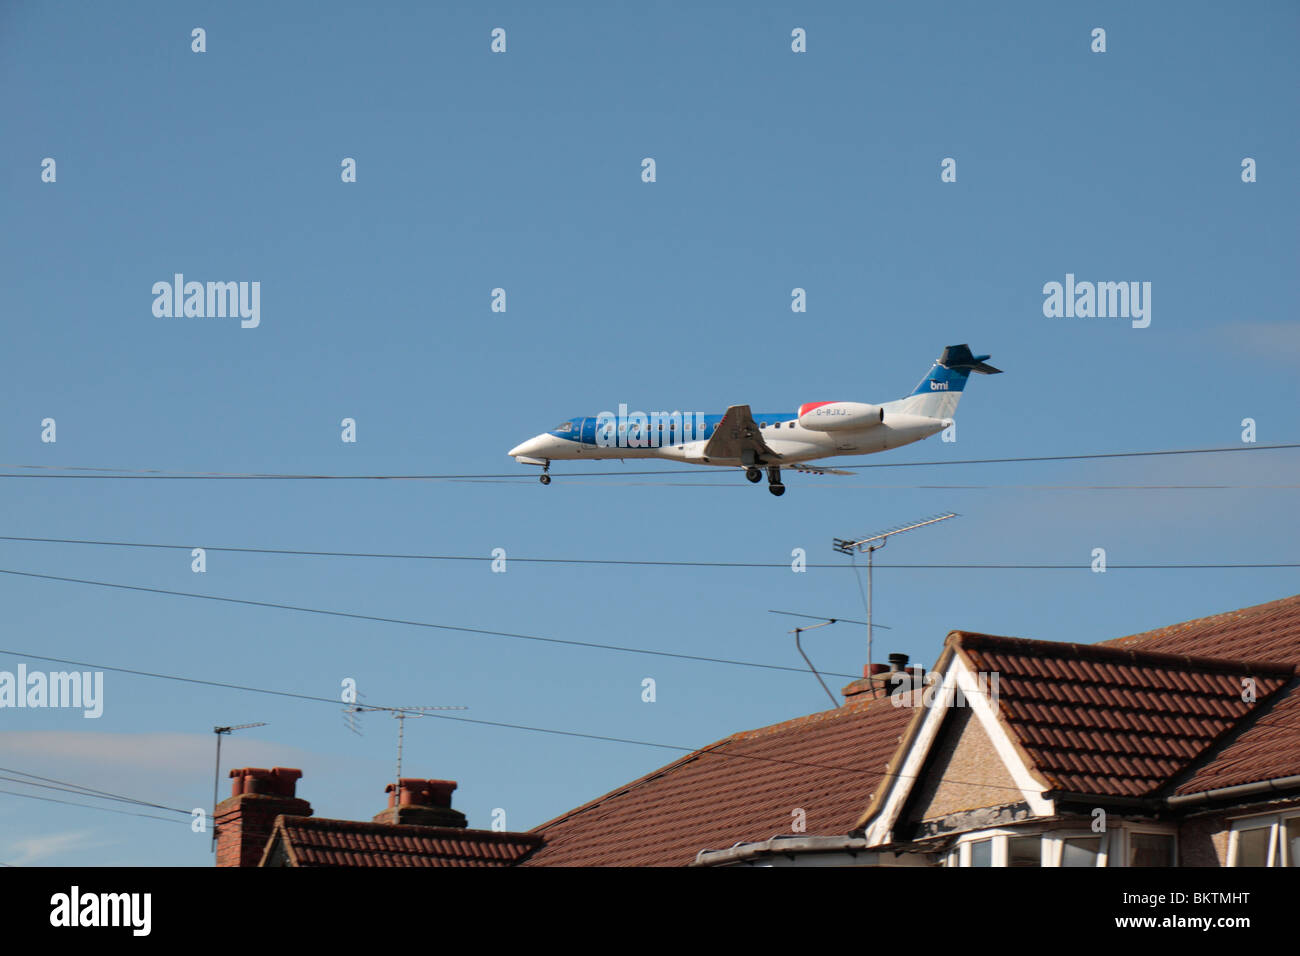 A BMI Regional Embraer EMB-135ER (ERJ-135ER) landing at Heathrow Airport, London, UK. View fm Myrtle Avenue, Hounslow. - Stock Image